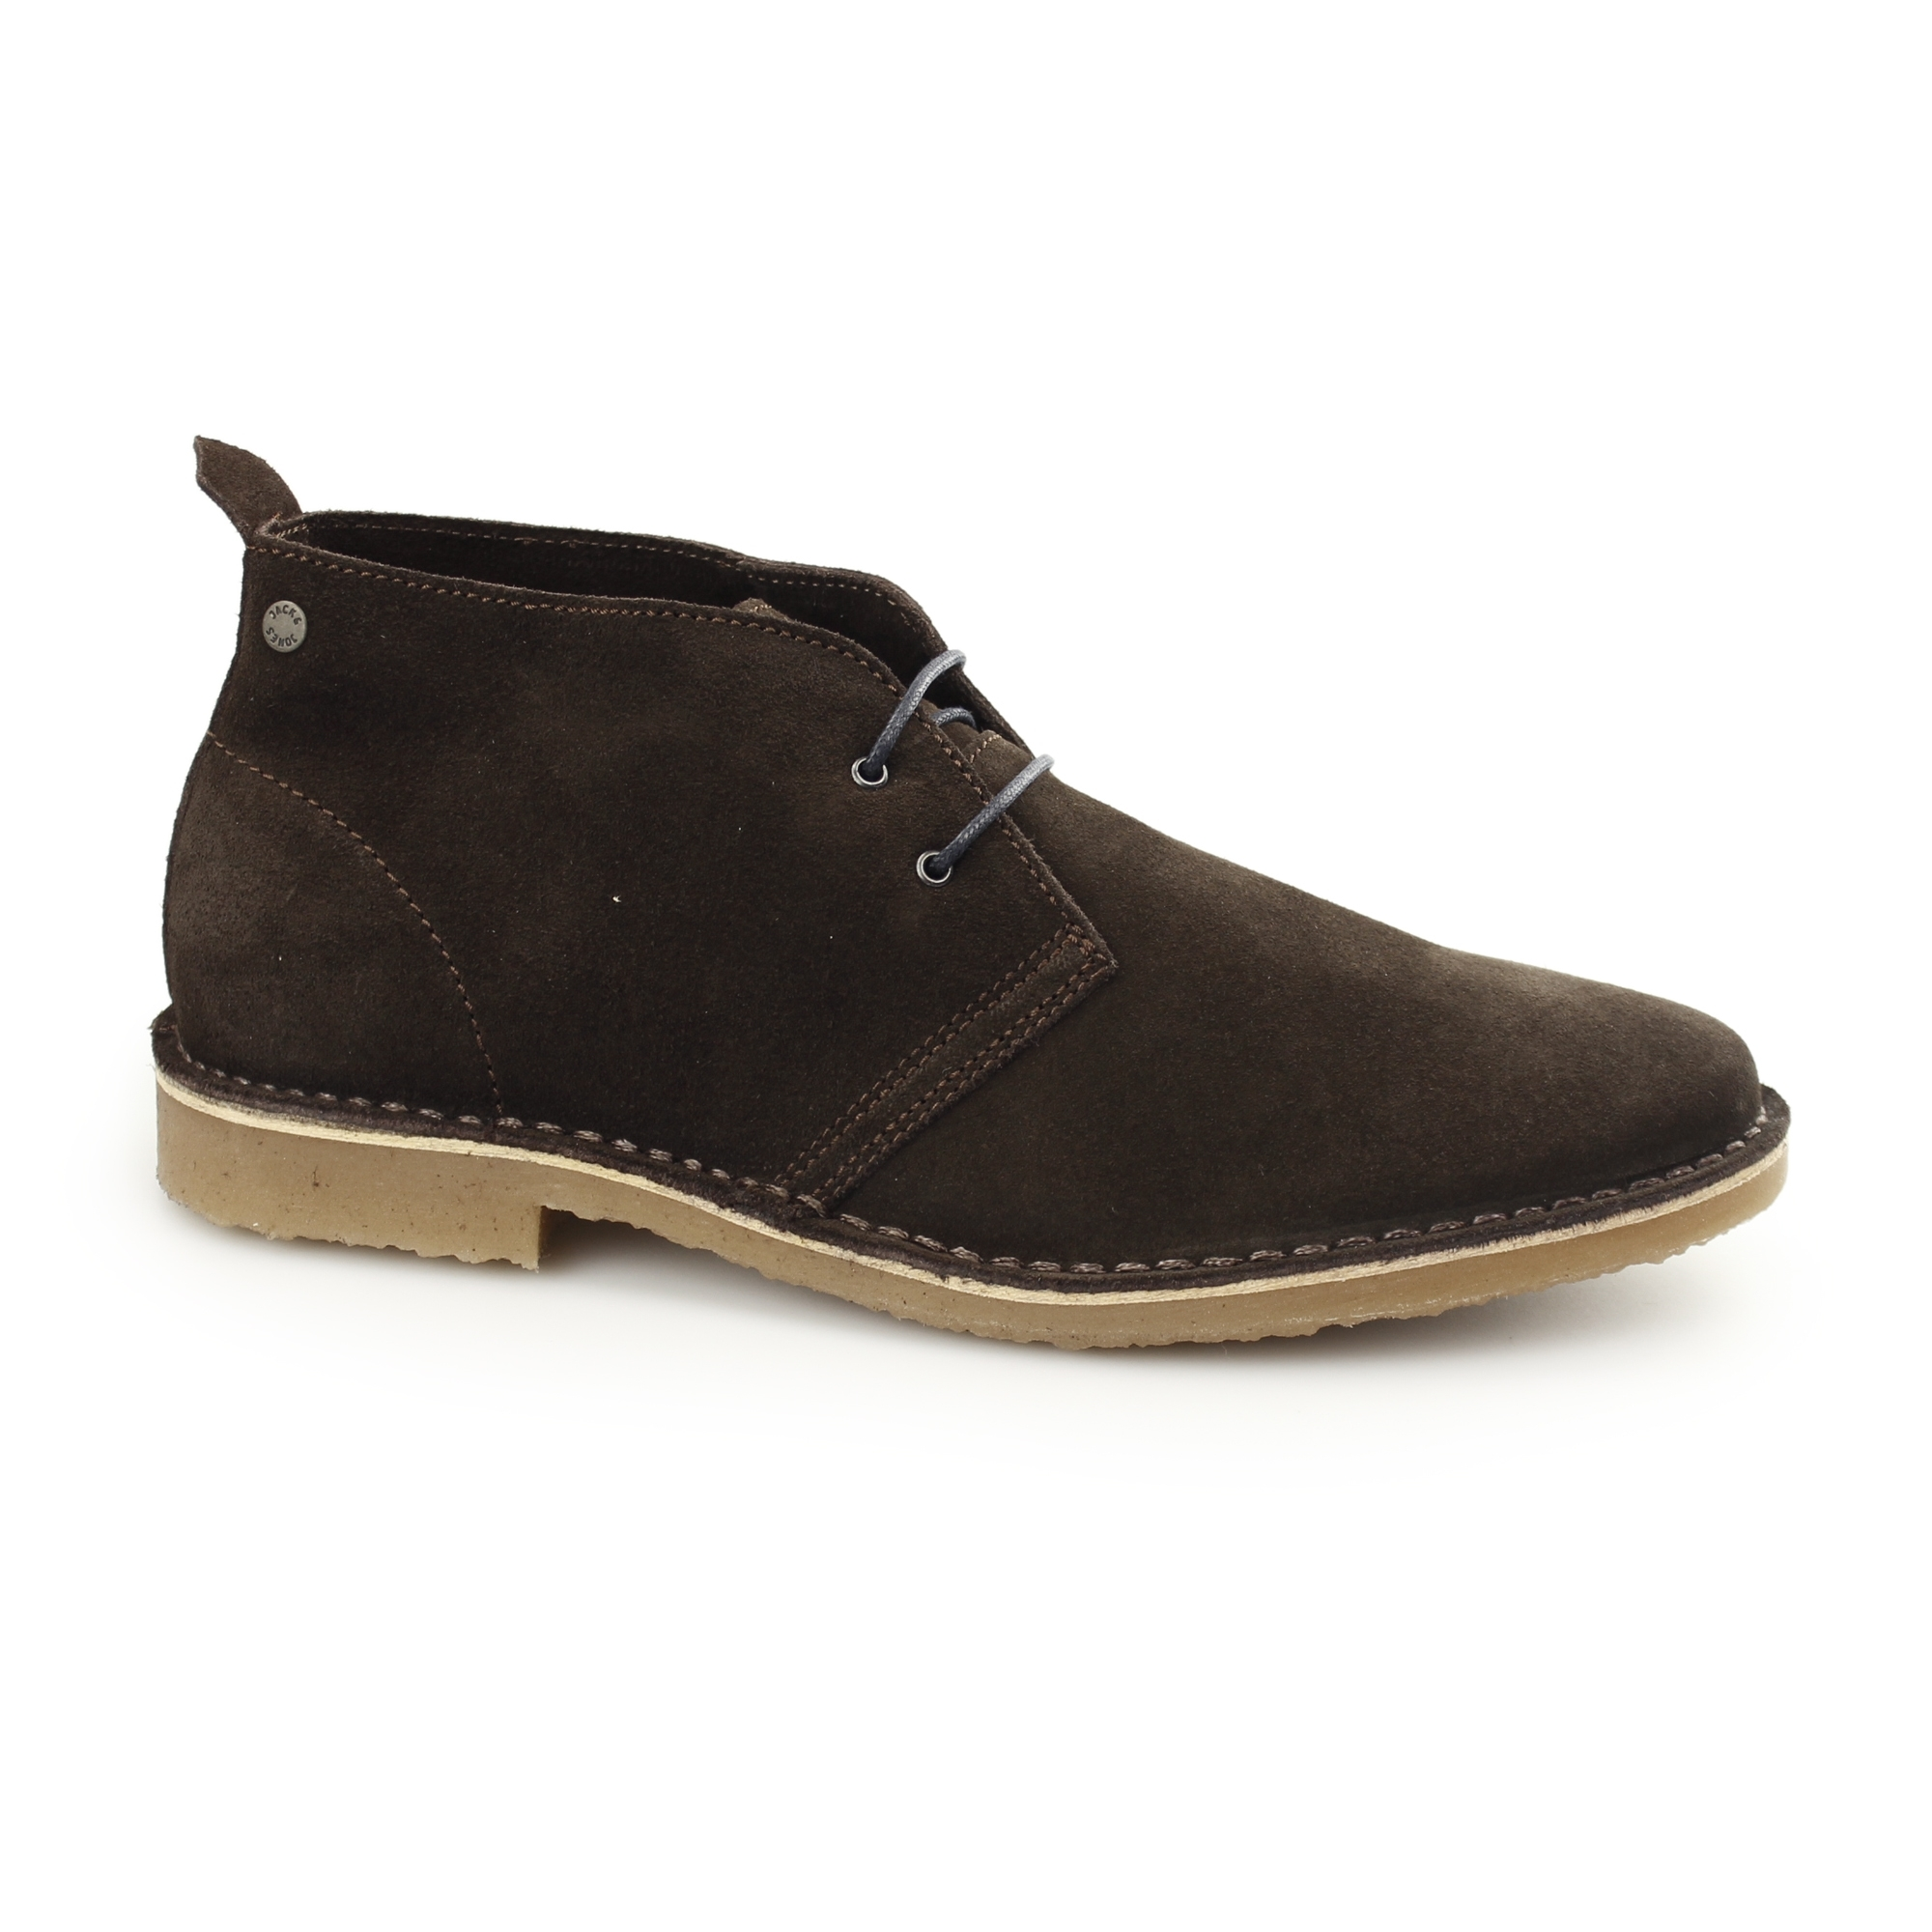 Lucini Mens Soft Suede Leather Lace Up Comfy Casual Desert Shoes